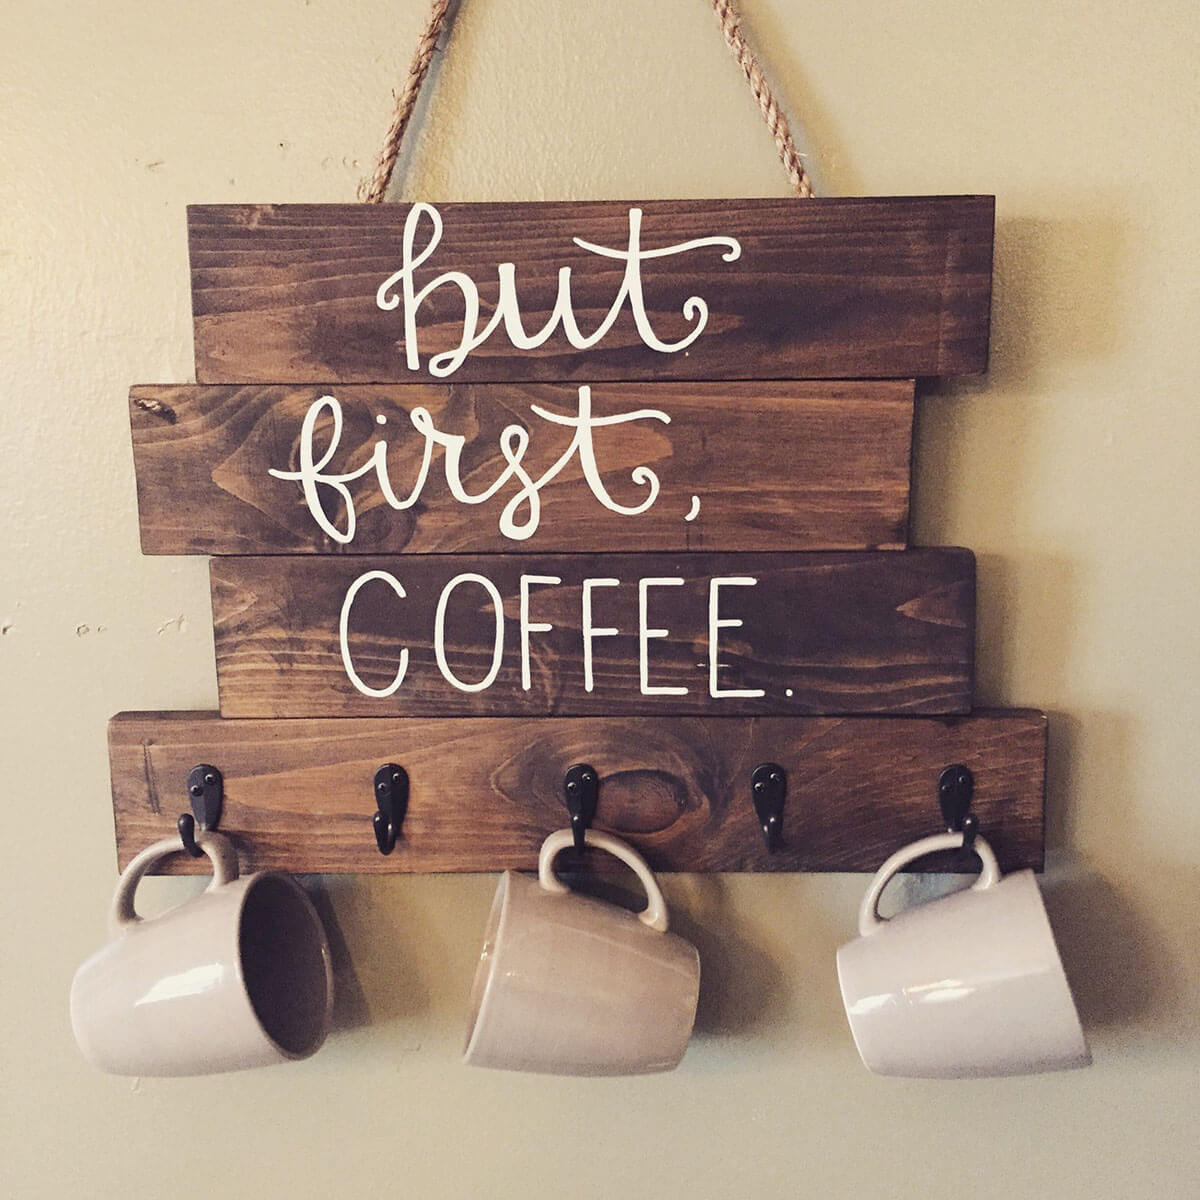 Hand-lettered Wall Sign with Storage Hooks